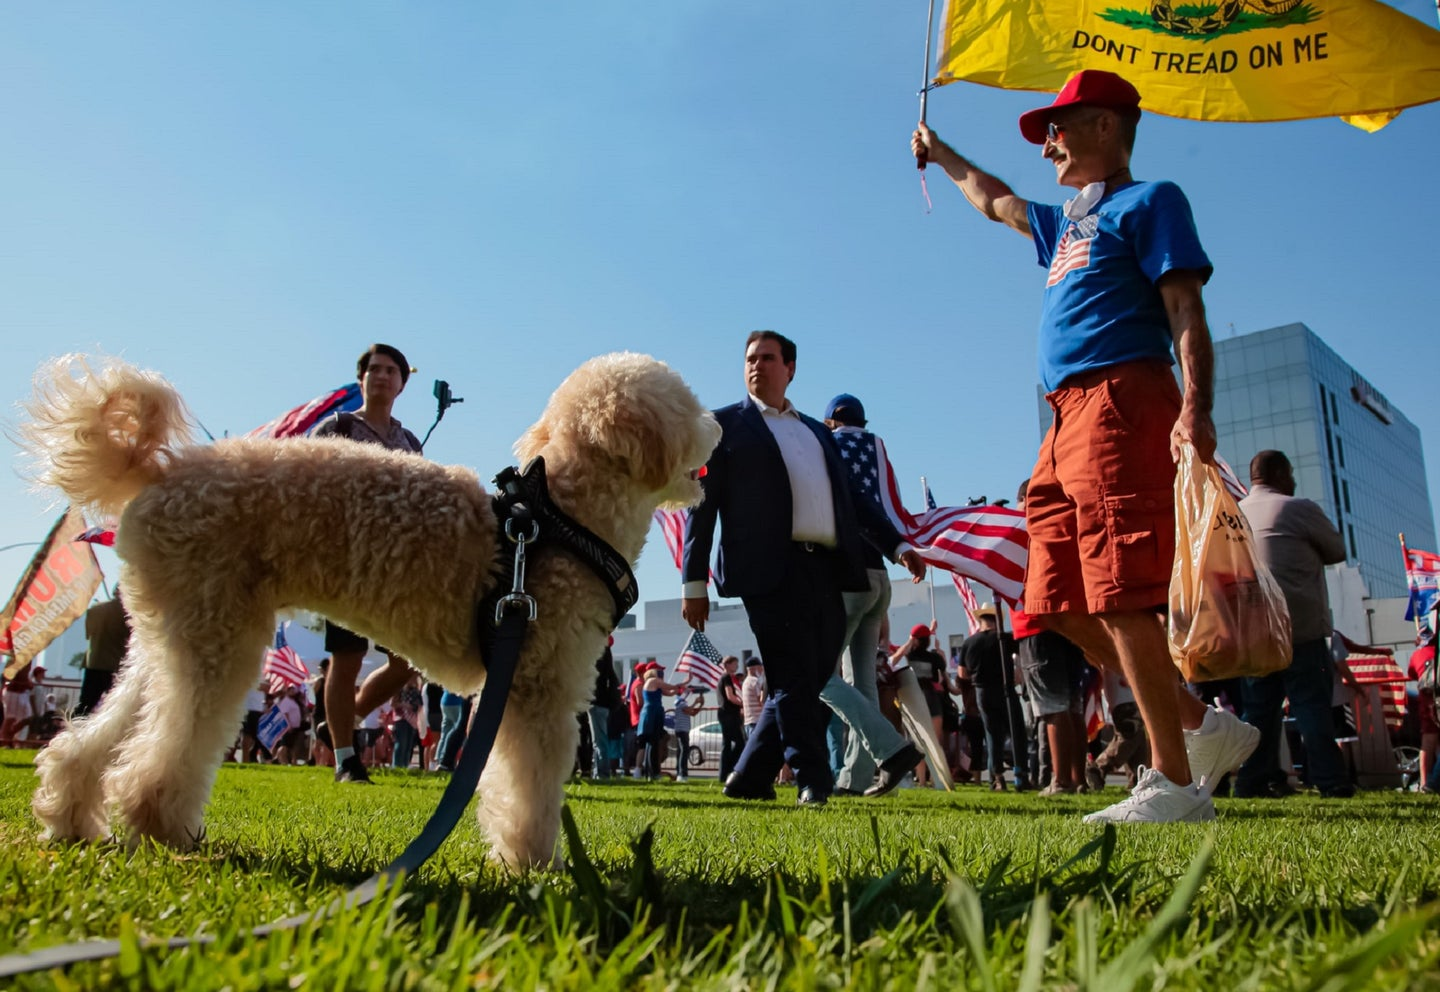 """Labradoodle dog looking at a person in a blue shirt with a yellow """"don't tread on me"""" flag"""